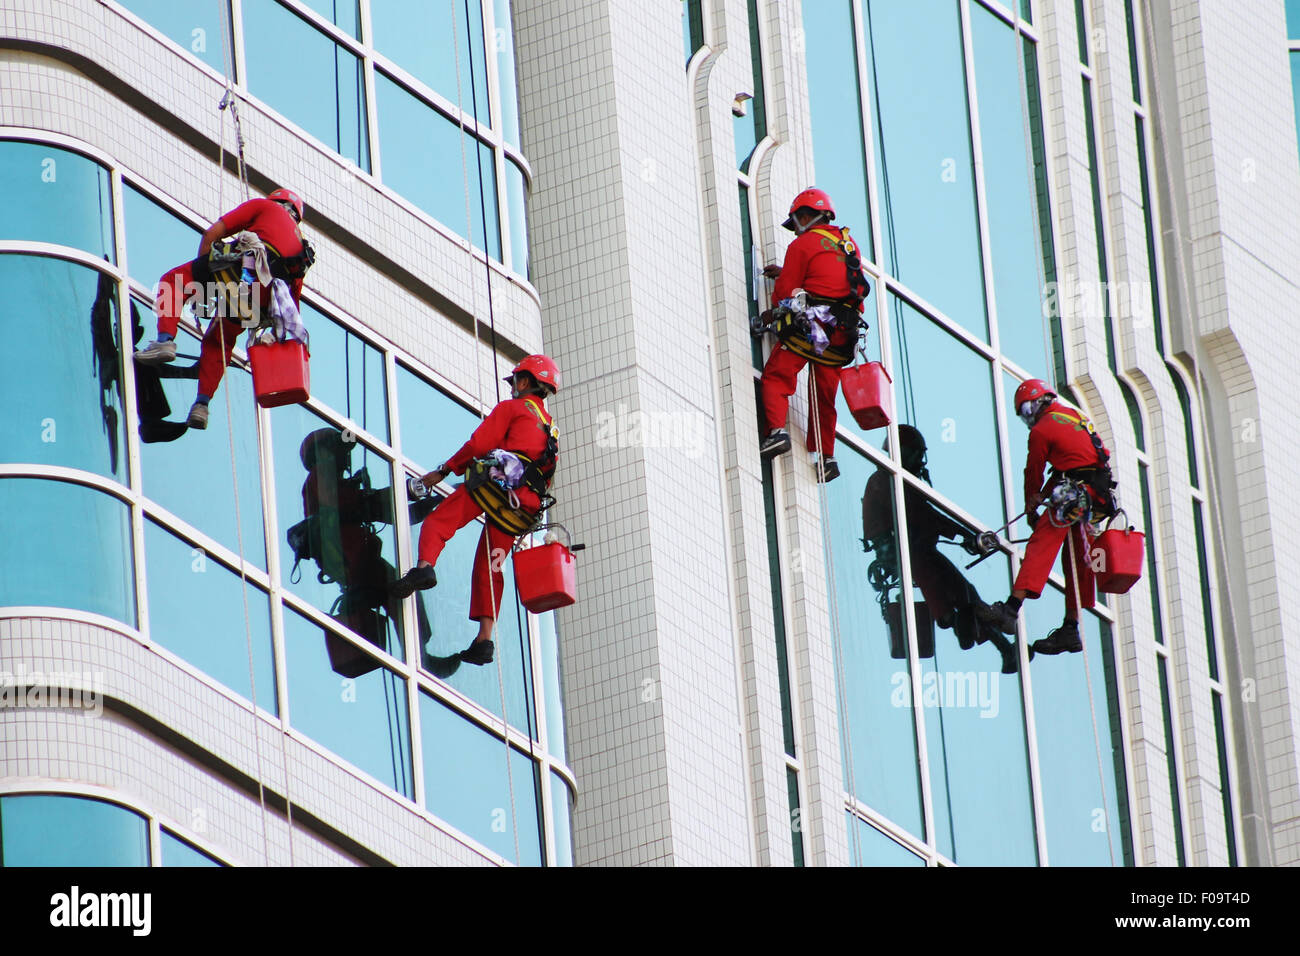 Boatswain Chair Window Cleaners Cleaning Windows Of Modern Office Tower